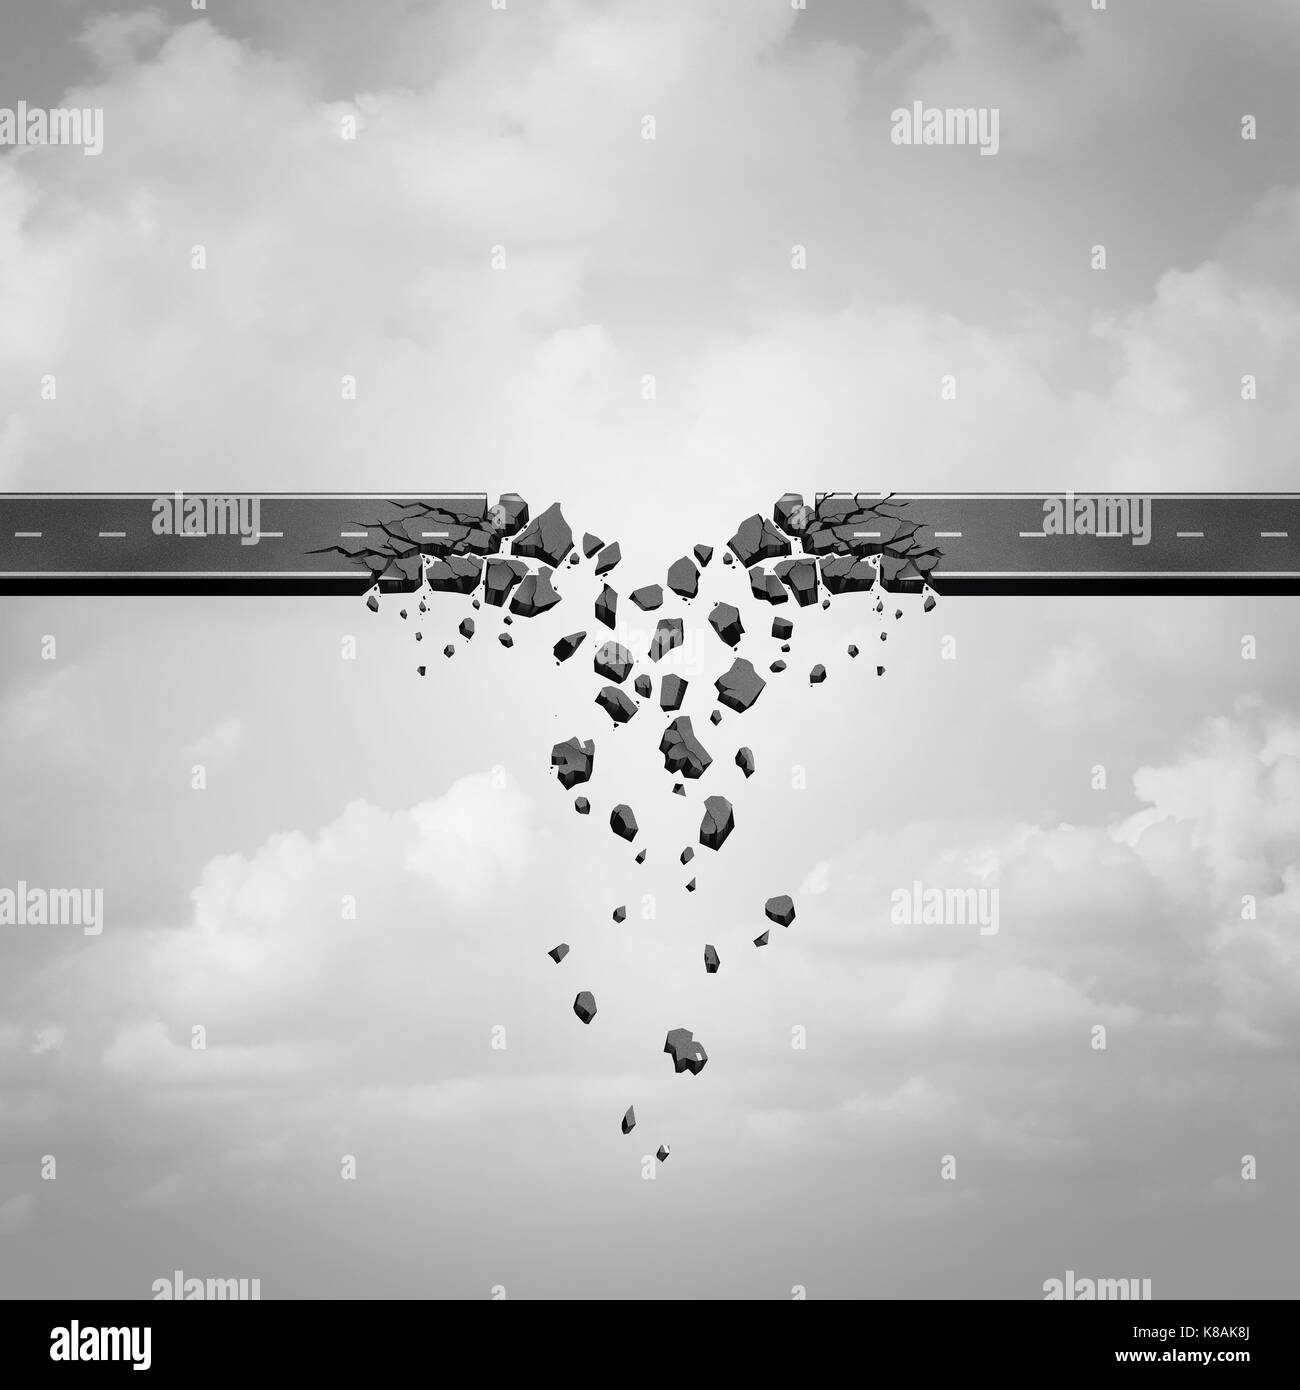 Broken connection and collapse business concept as a road being destroyed and separated as a failure to communicate - Stock Image